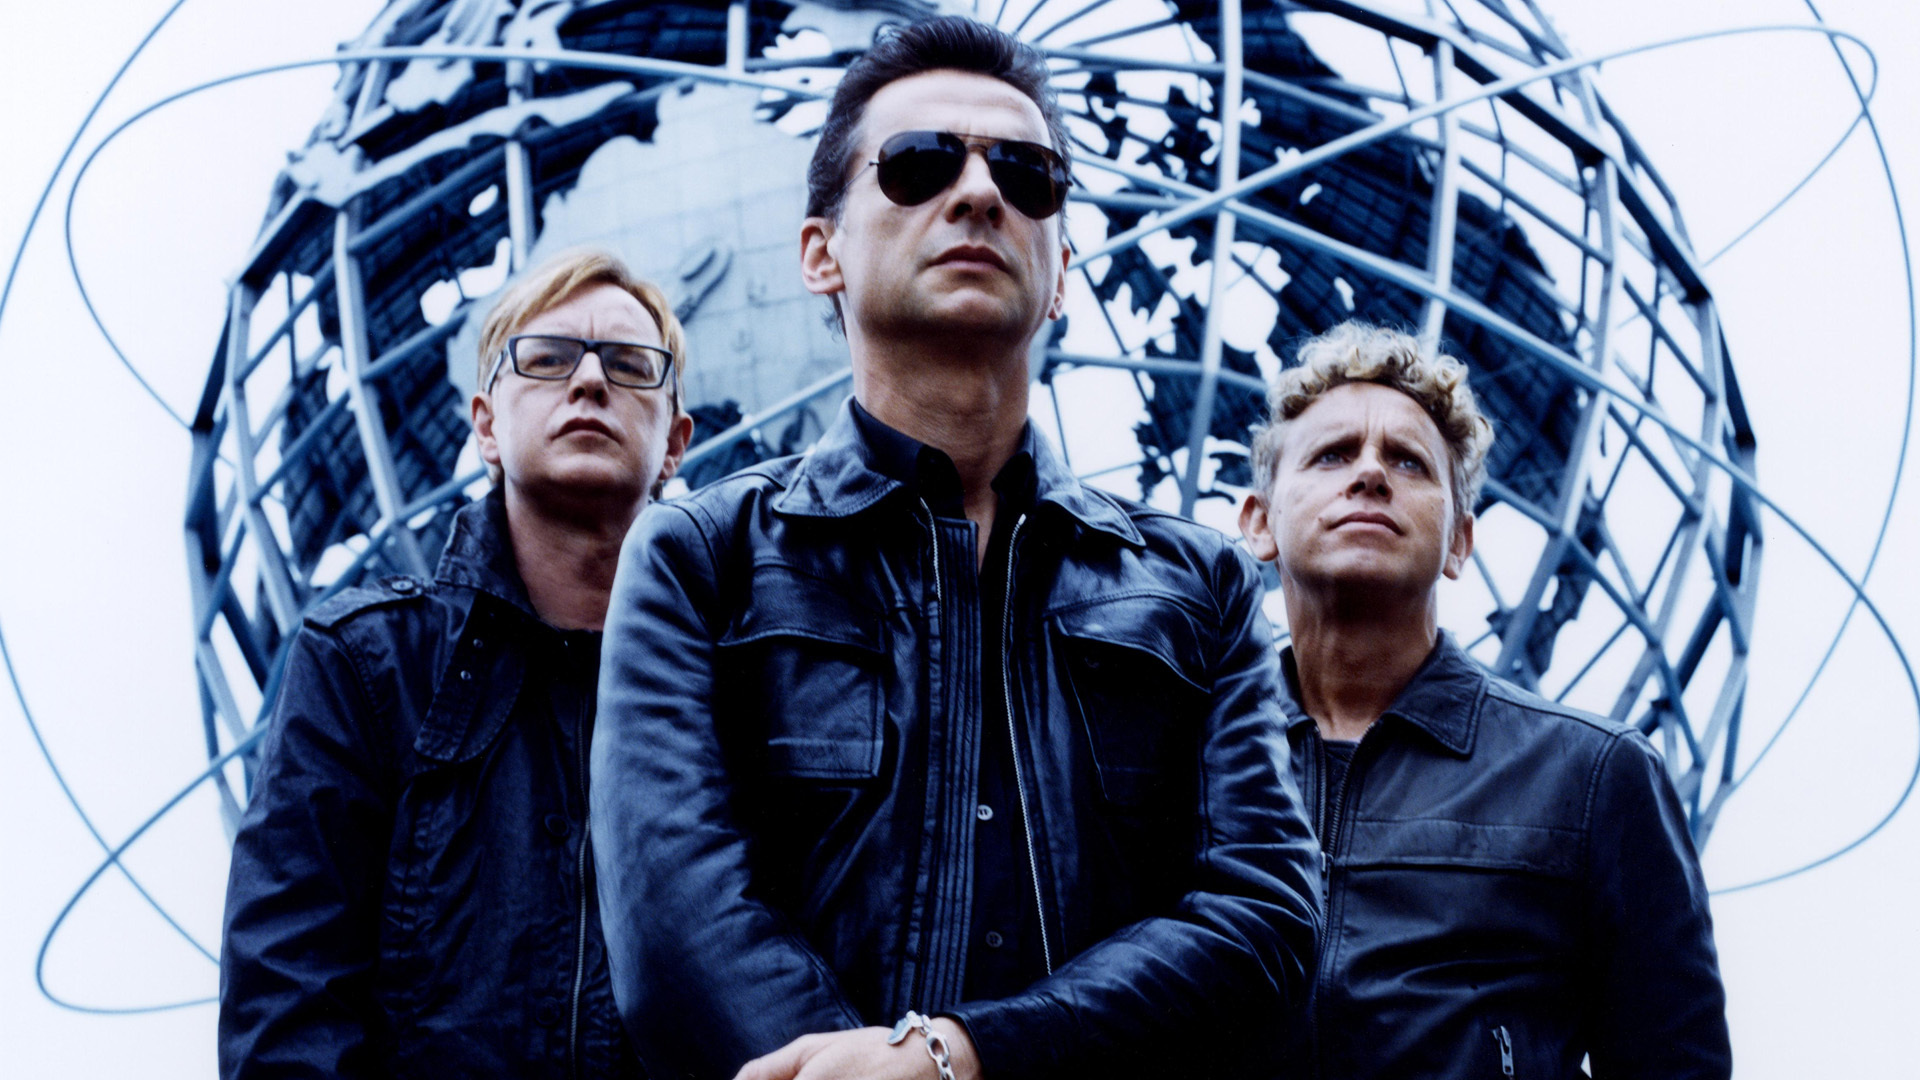 depeche mode full hd wallpaper and background 1920x1080 id 196619. Black Bedroom Furniture Sets. Home Design Ideas